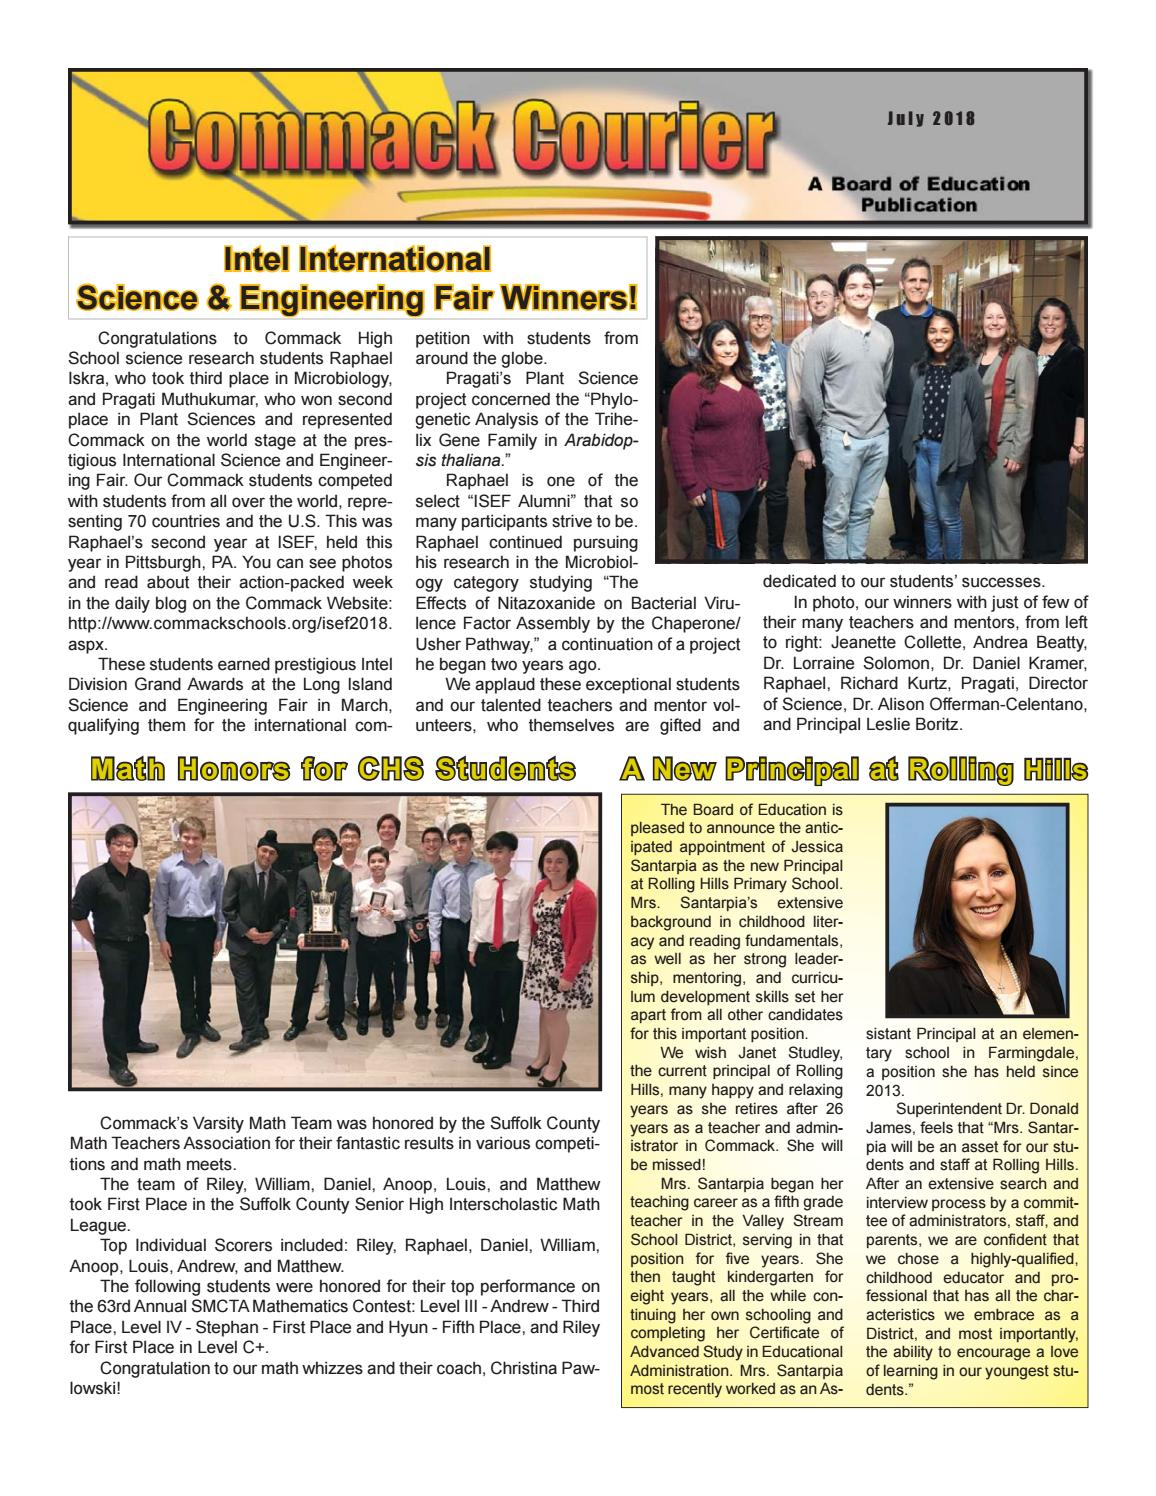 Commack Courier July 2018 By Commack Public Schools Issuu